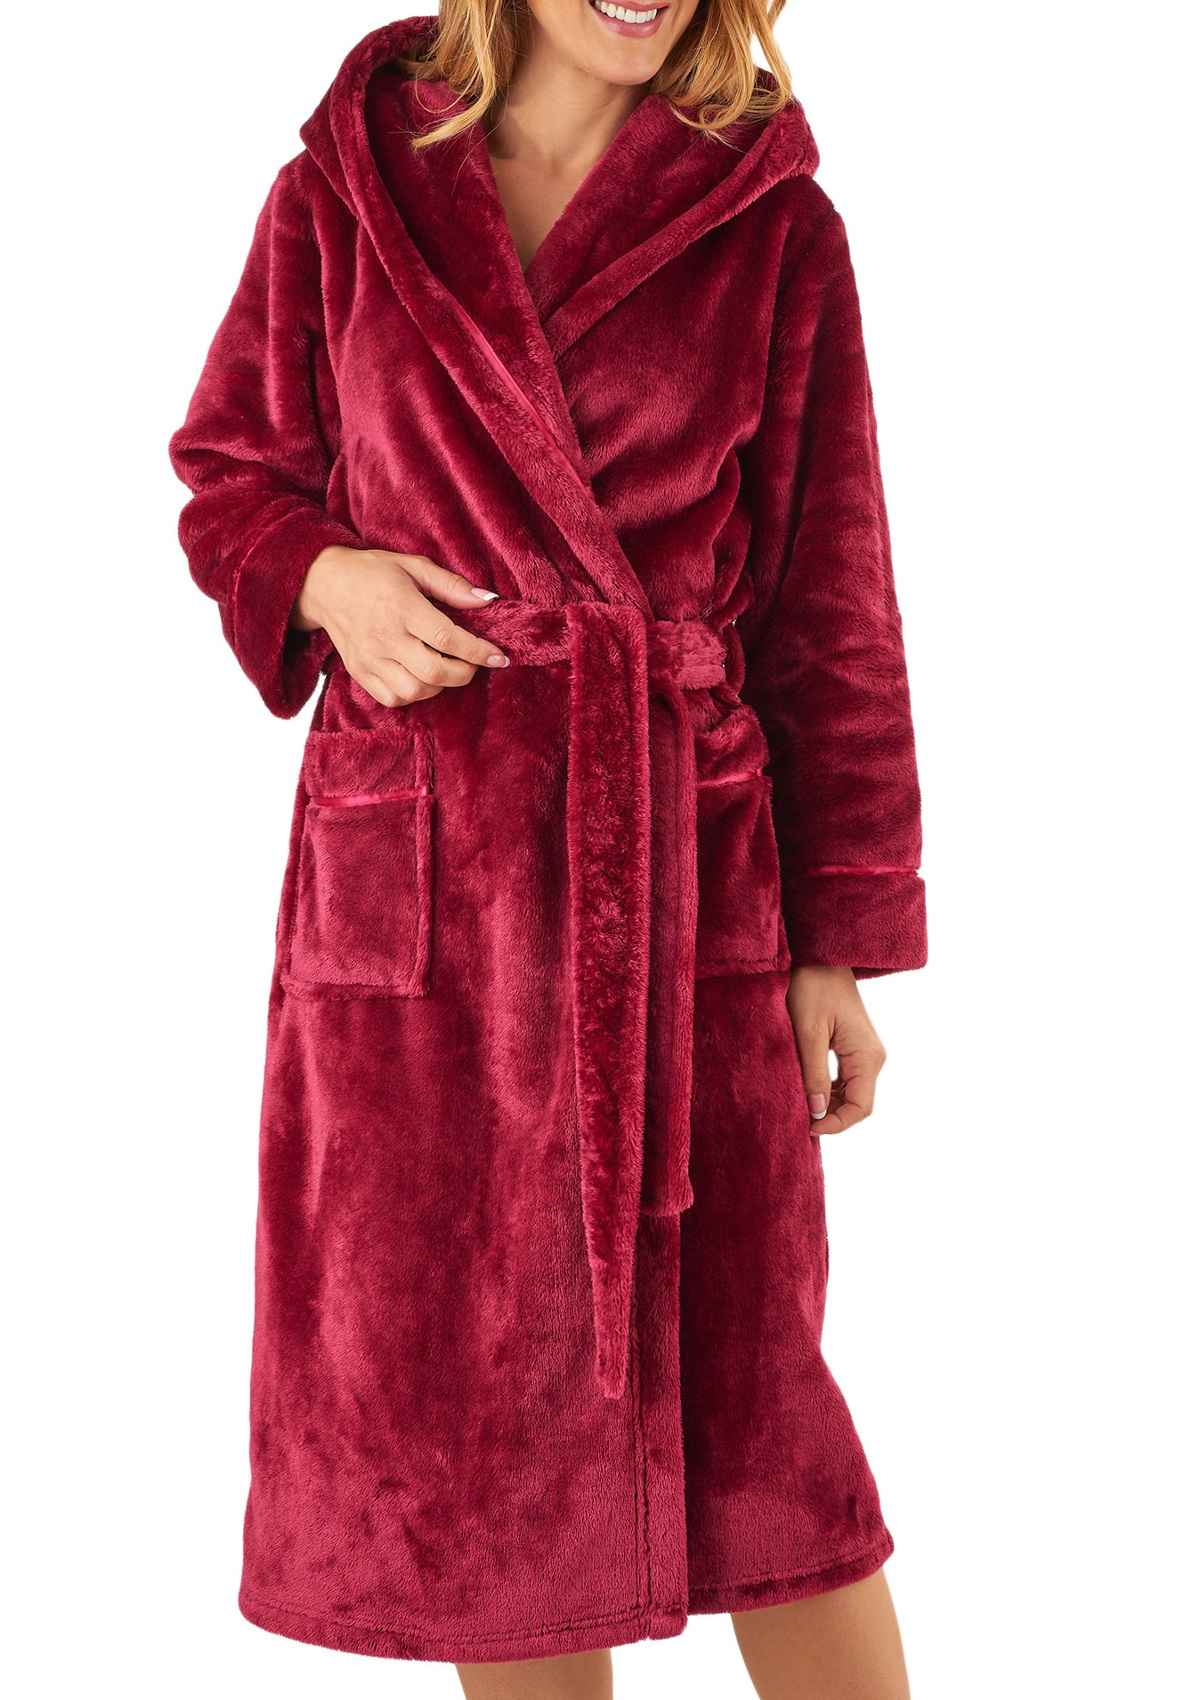 Offers luxury spa robes and slippers for men and women. Our bathrobes are made with soft cotton and plush microfiber. Available in robe sizes and a variety of colors.